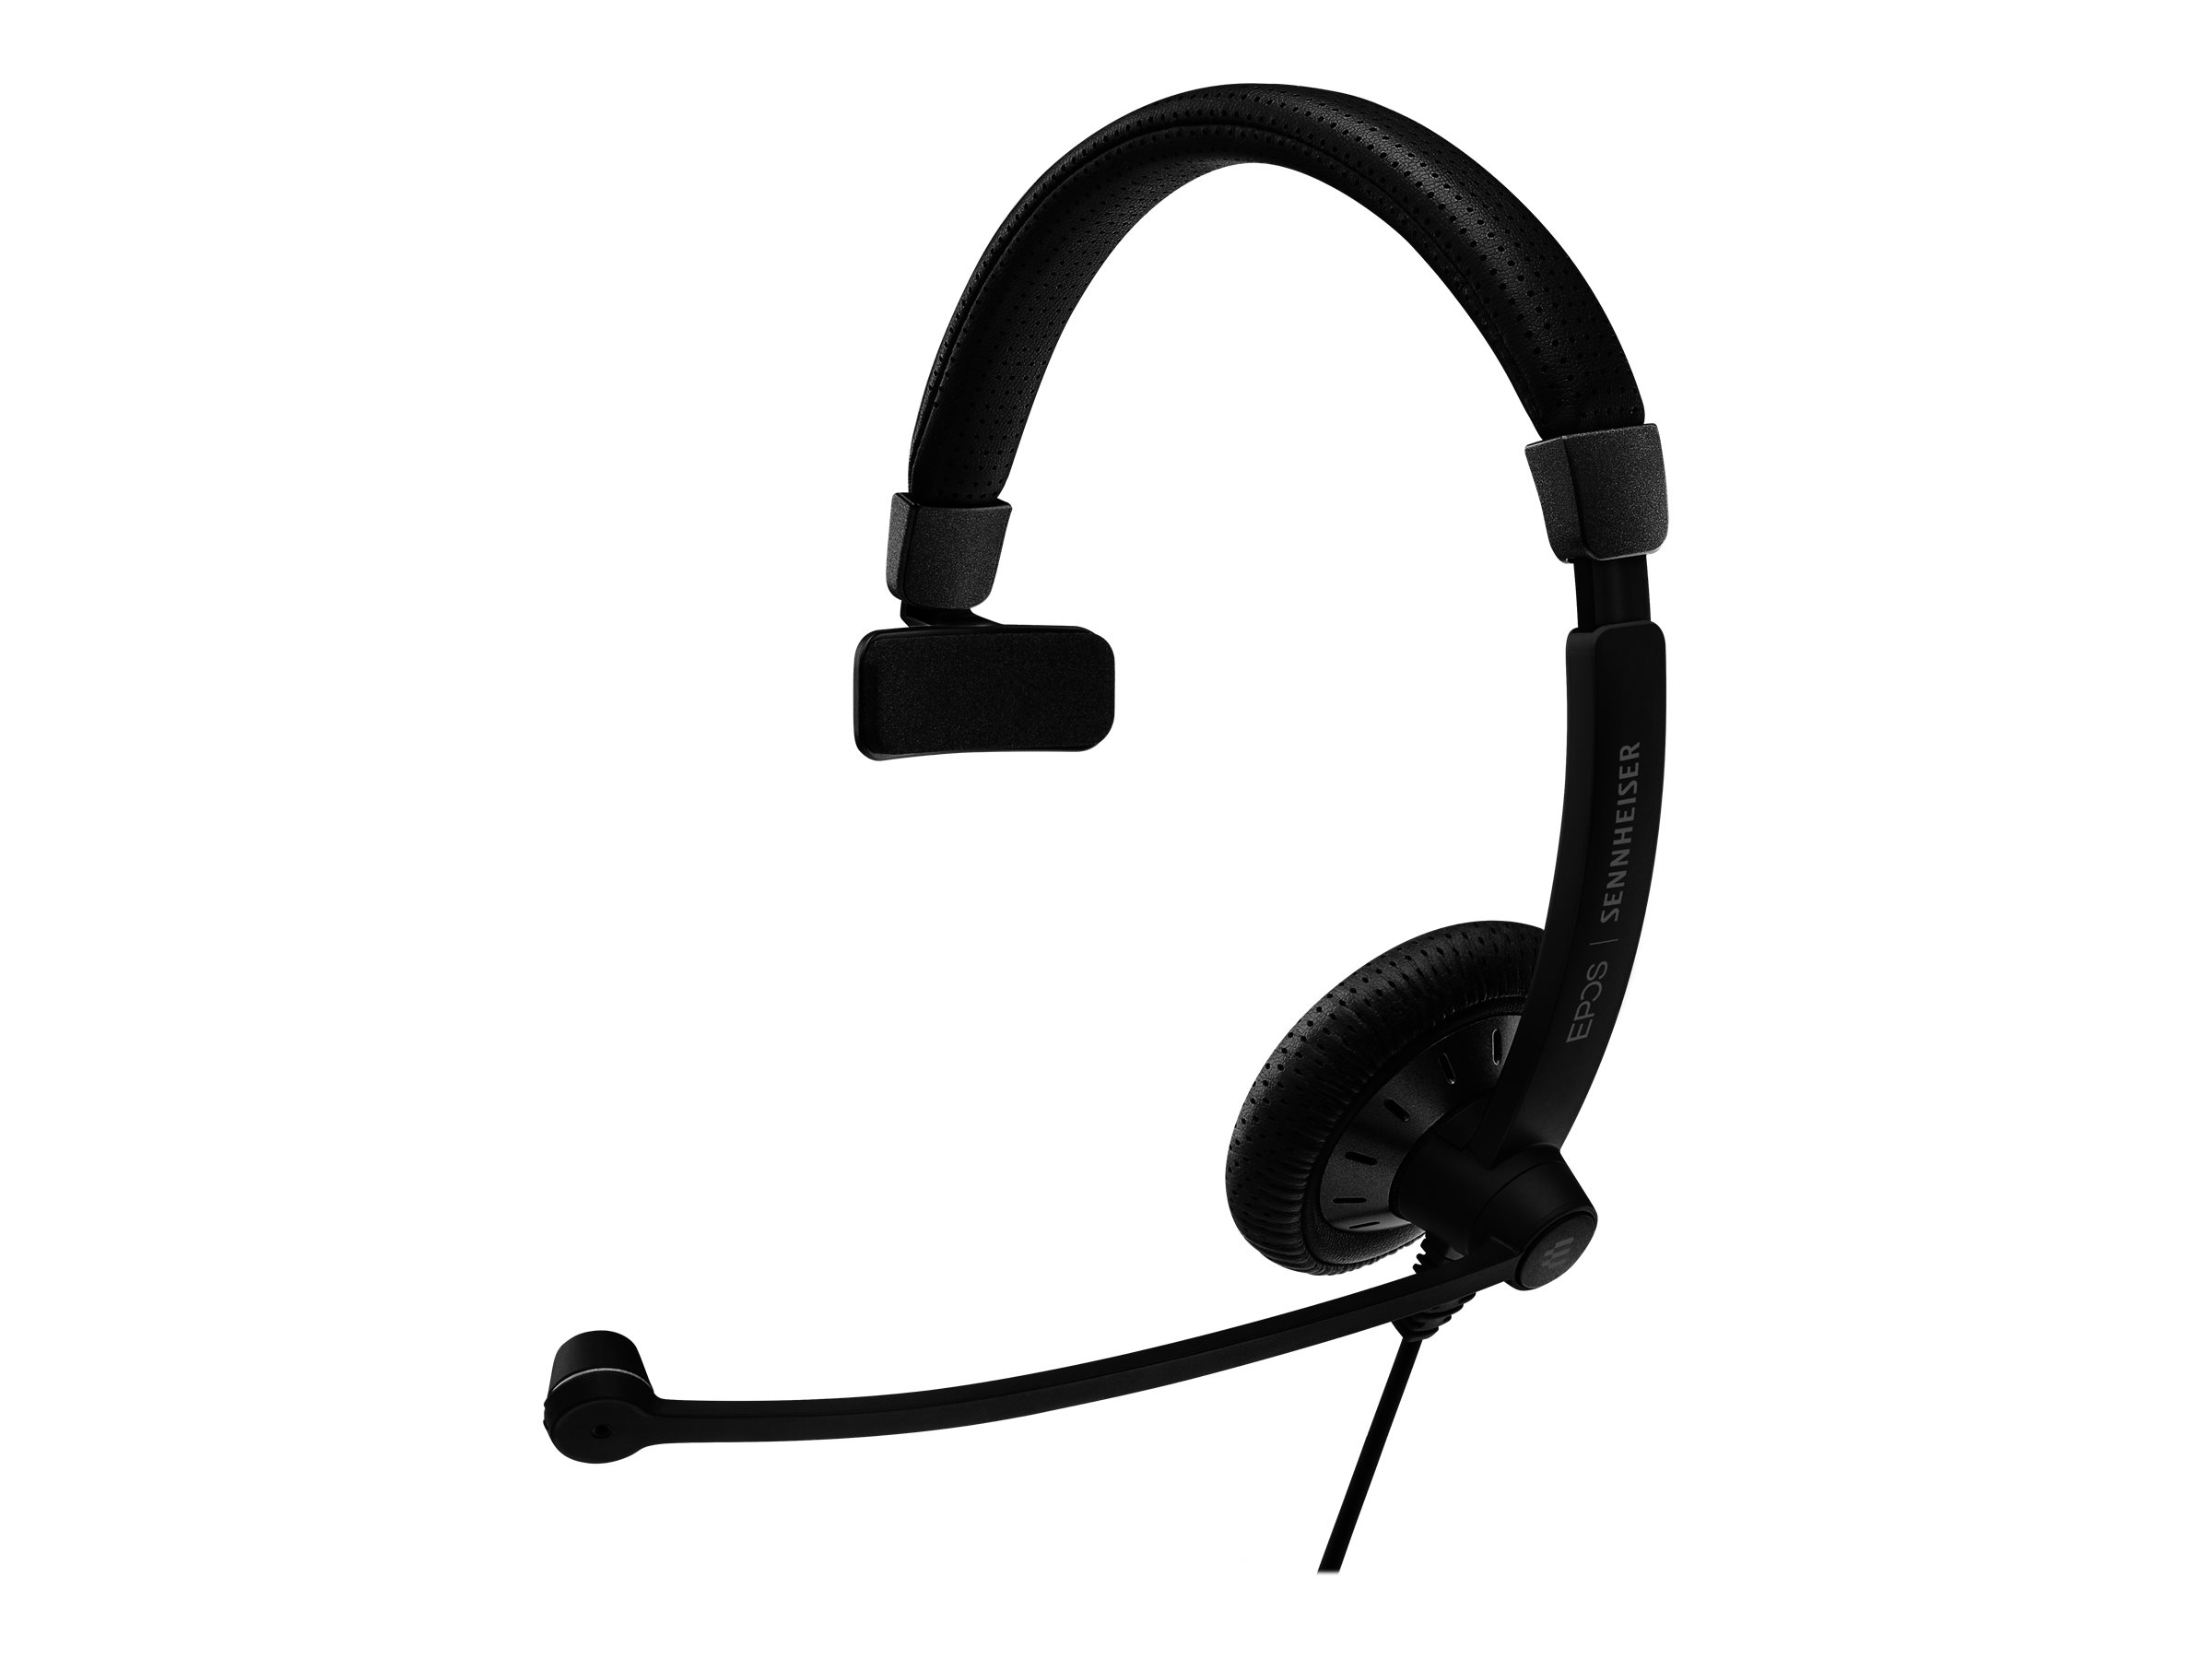 Sennheiser SC 45 USB MS - headset